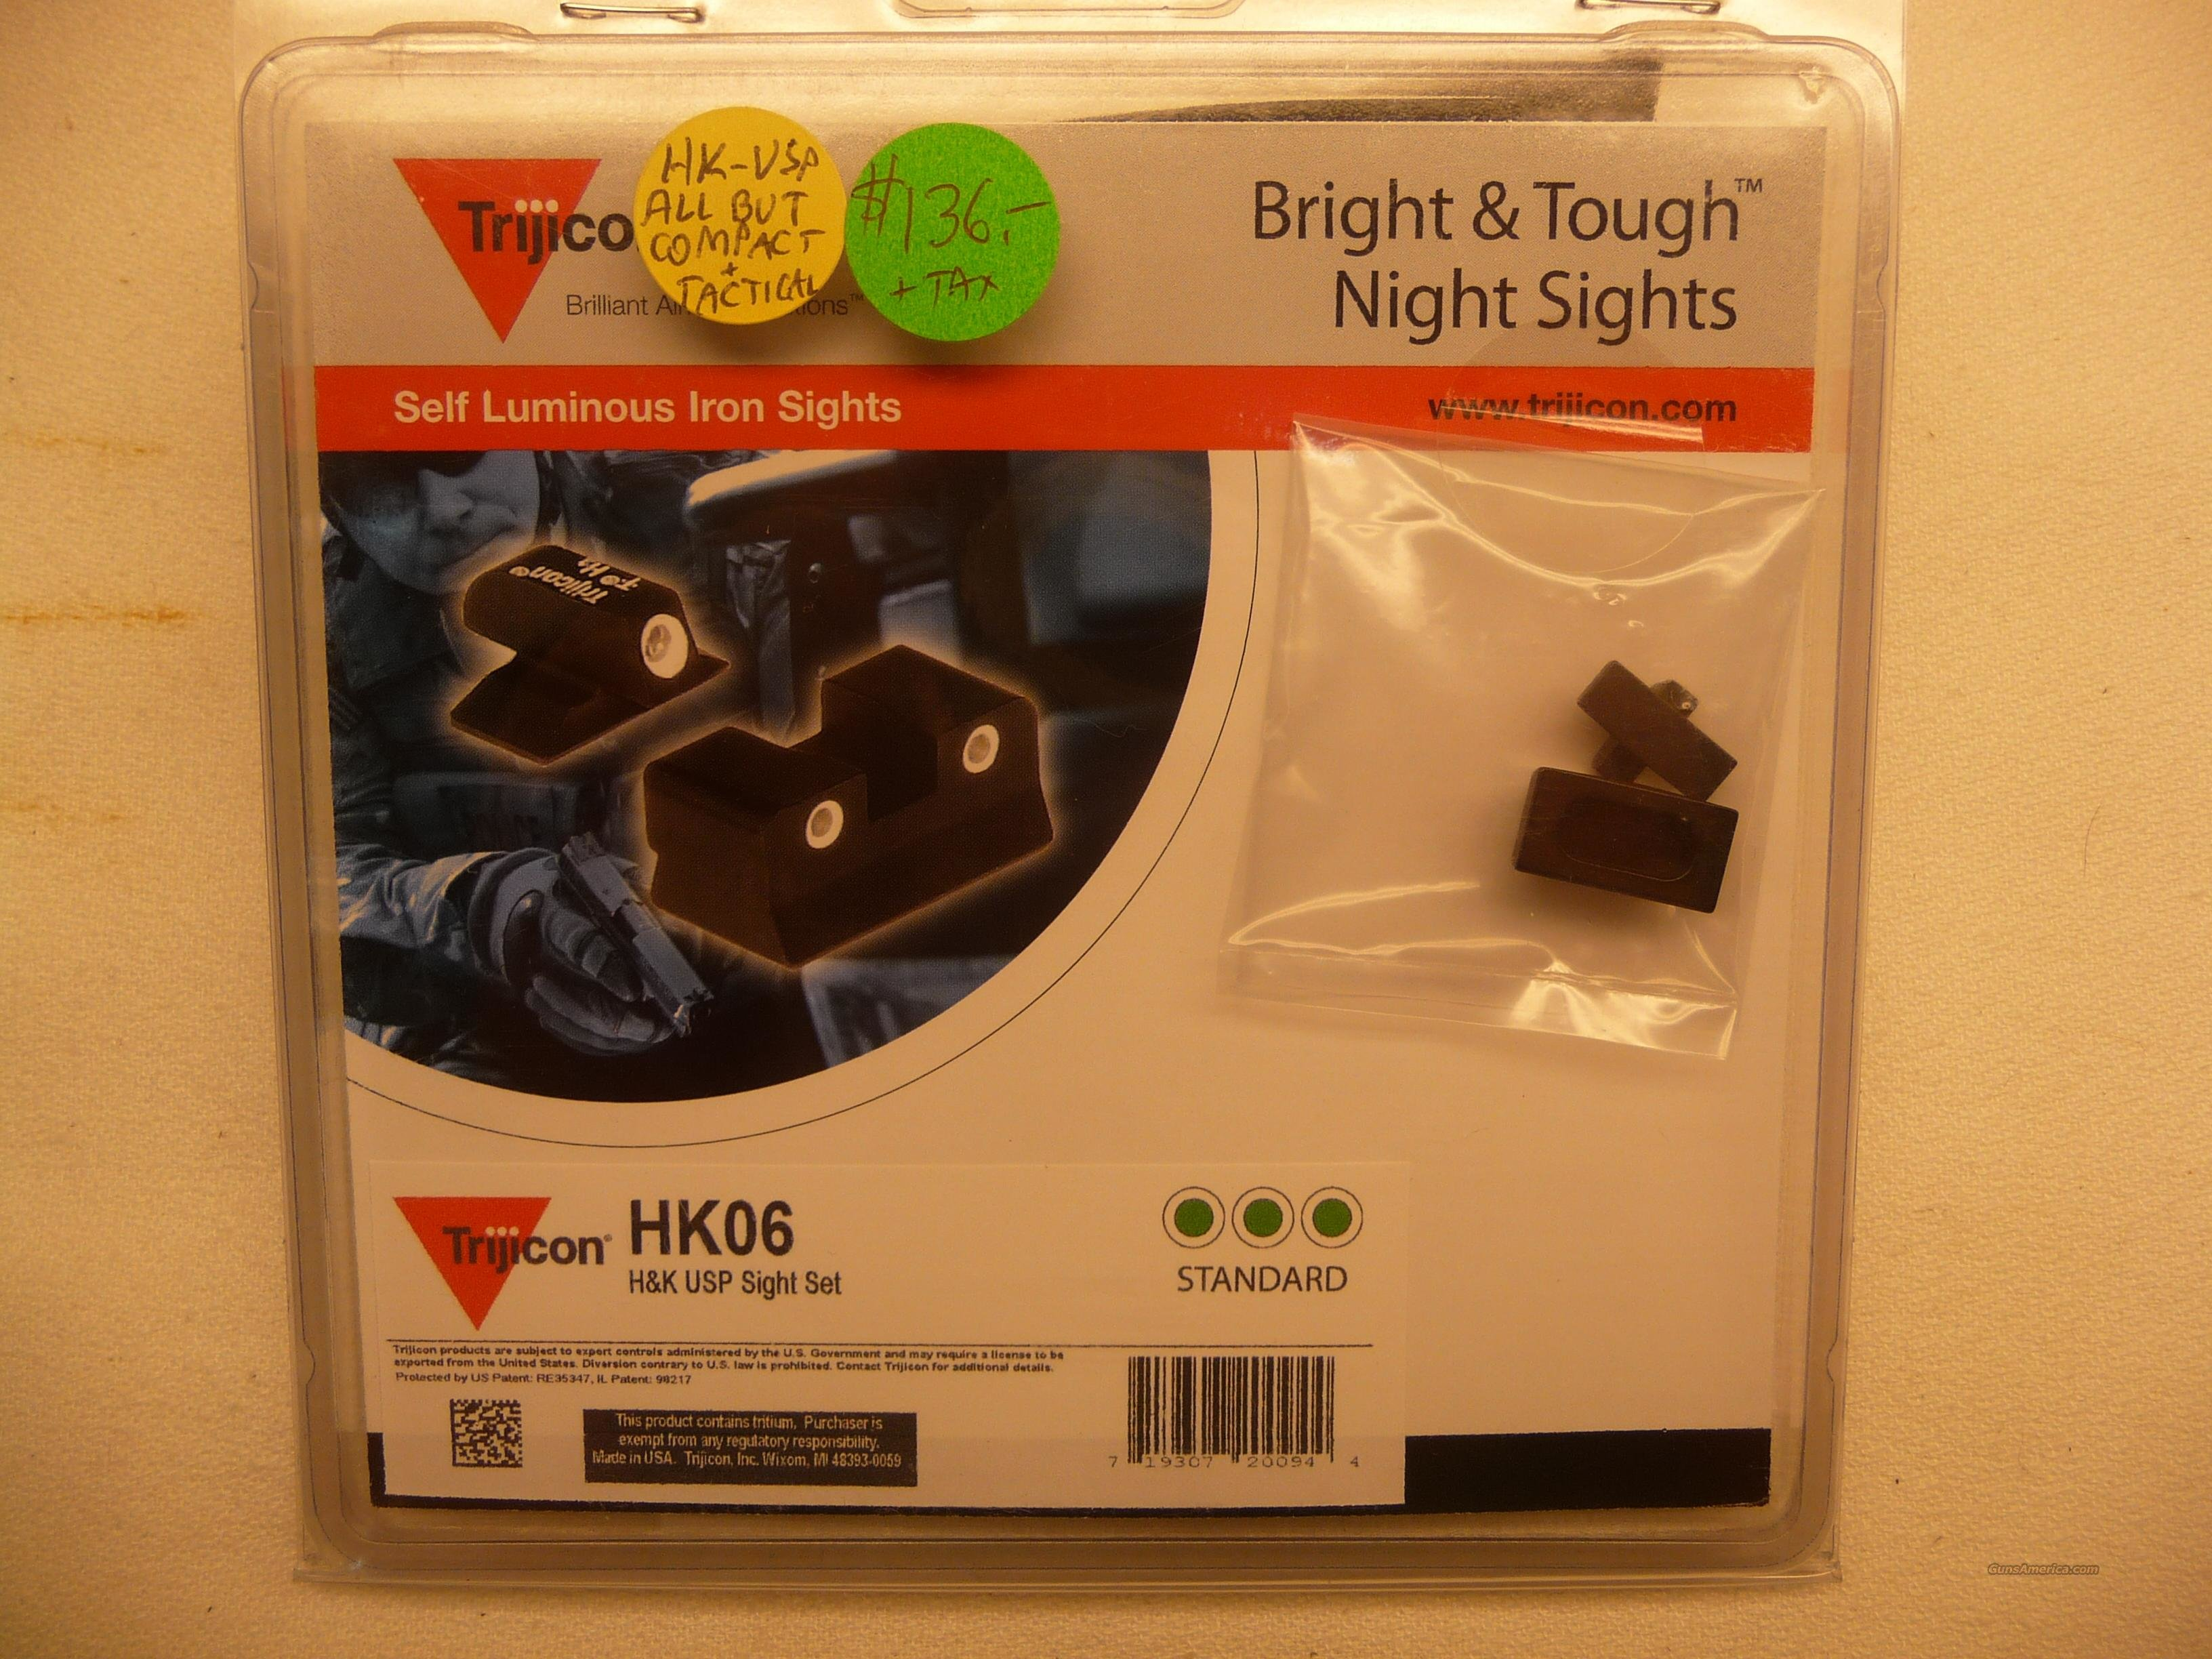 NEW Trijicon HK06 Night Sights for the H&K USP Pistol  Non-Guns > Gun Parts > Misc > Pistols